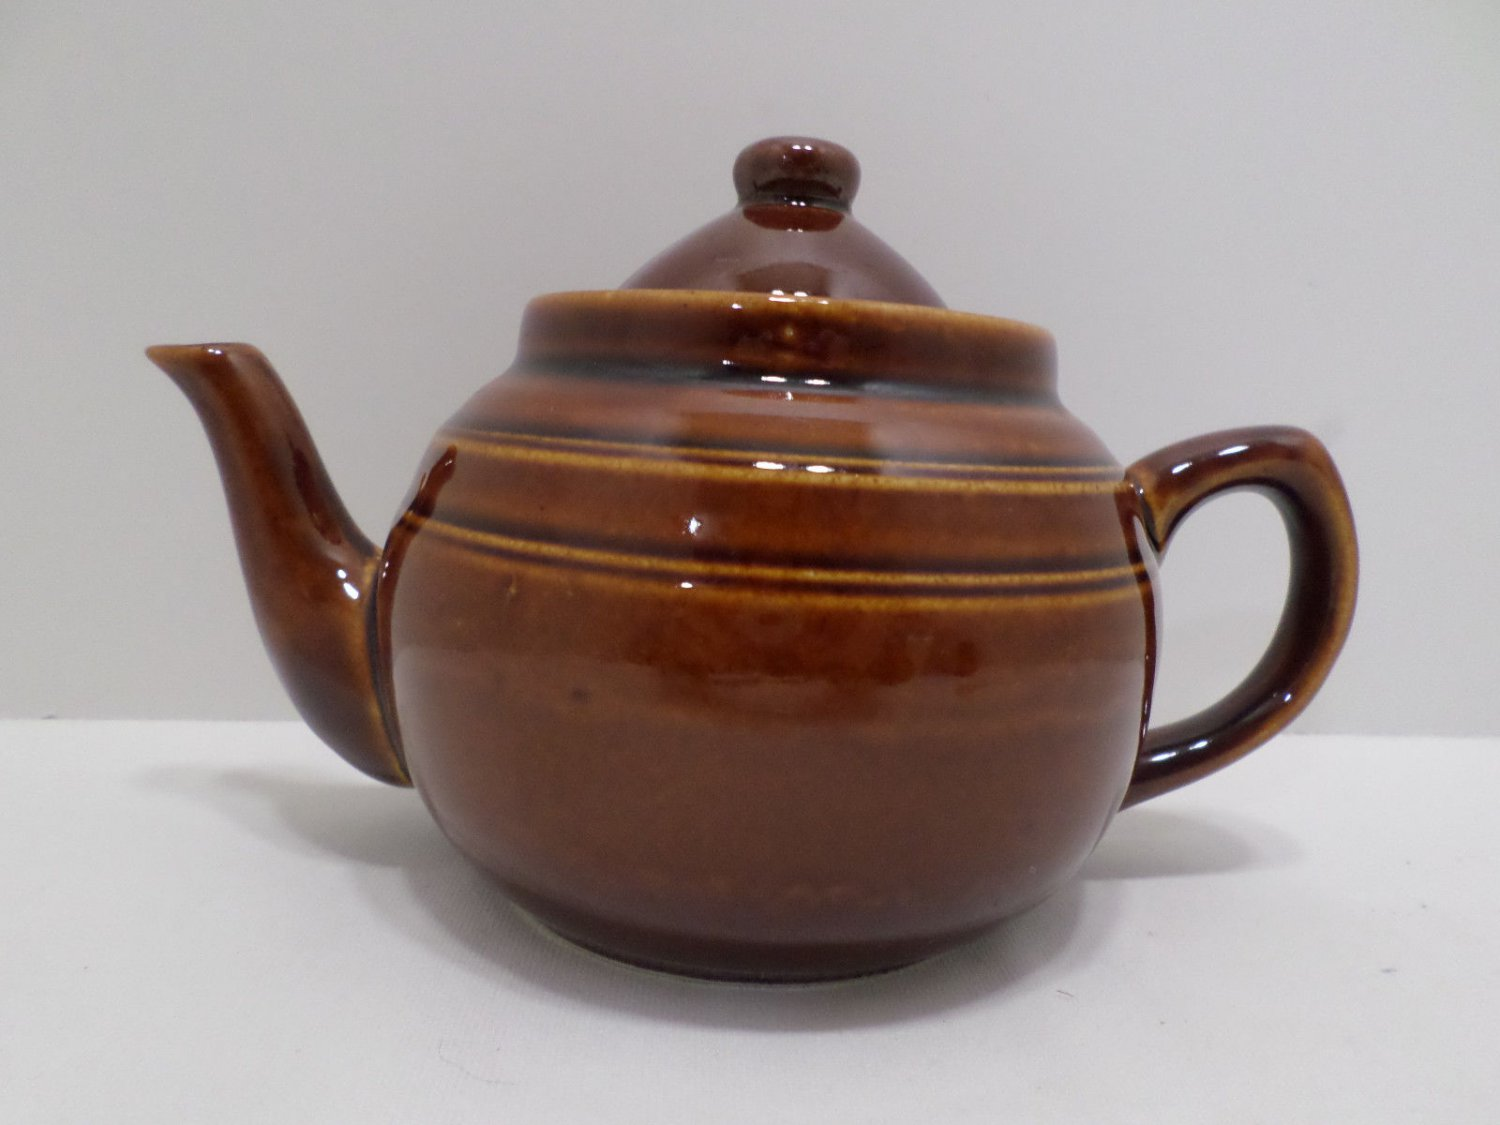 Vintage Teapot Brown Porcelain Made in China